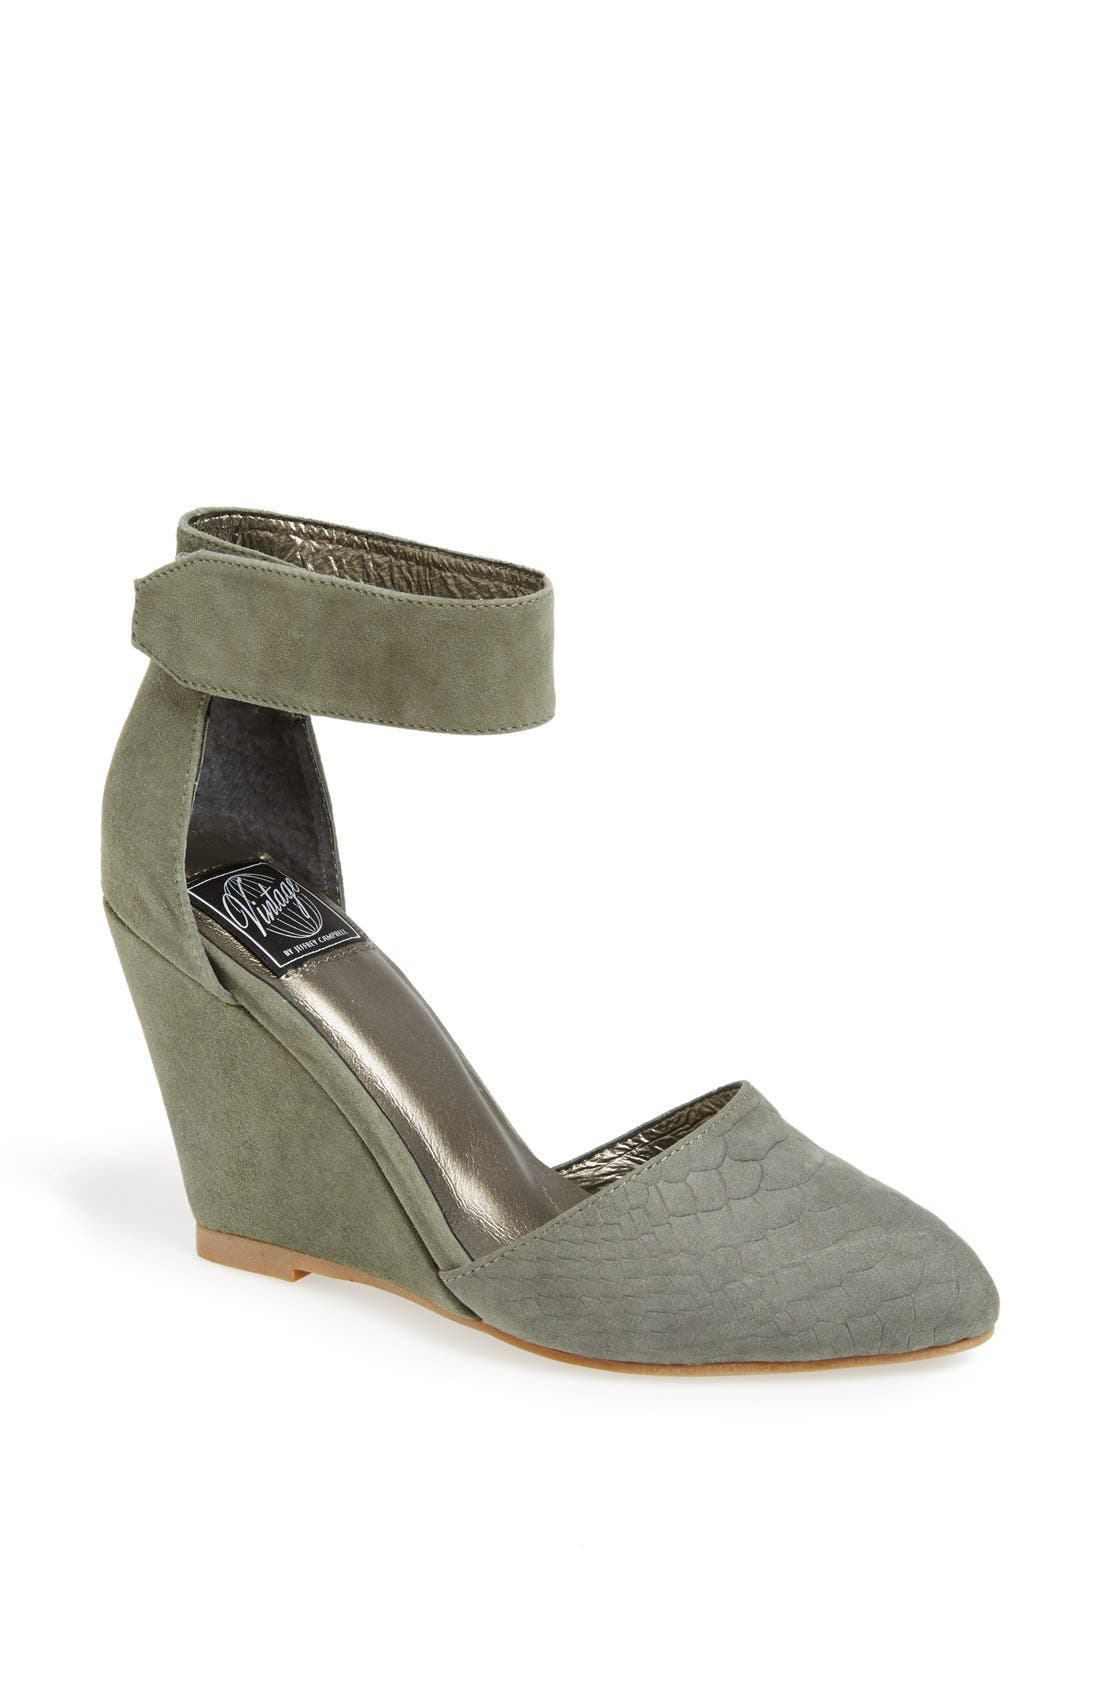 Main Image - Jeffrey Campbell 'Tatum' Wedge Pump